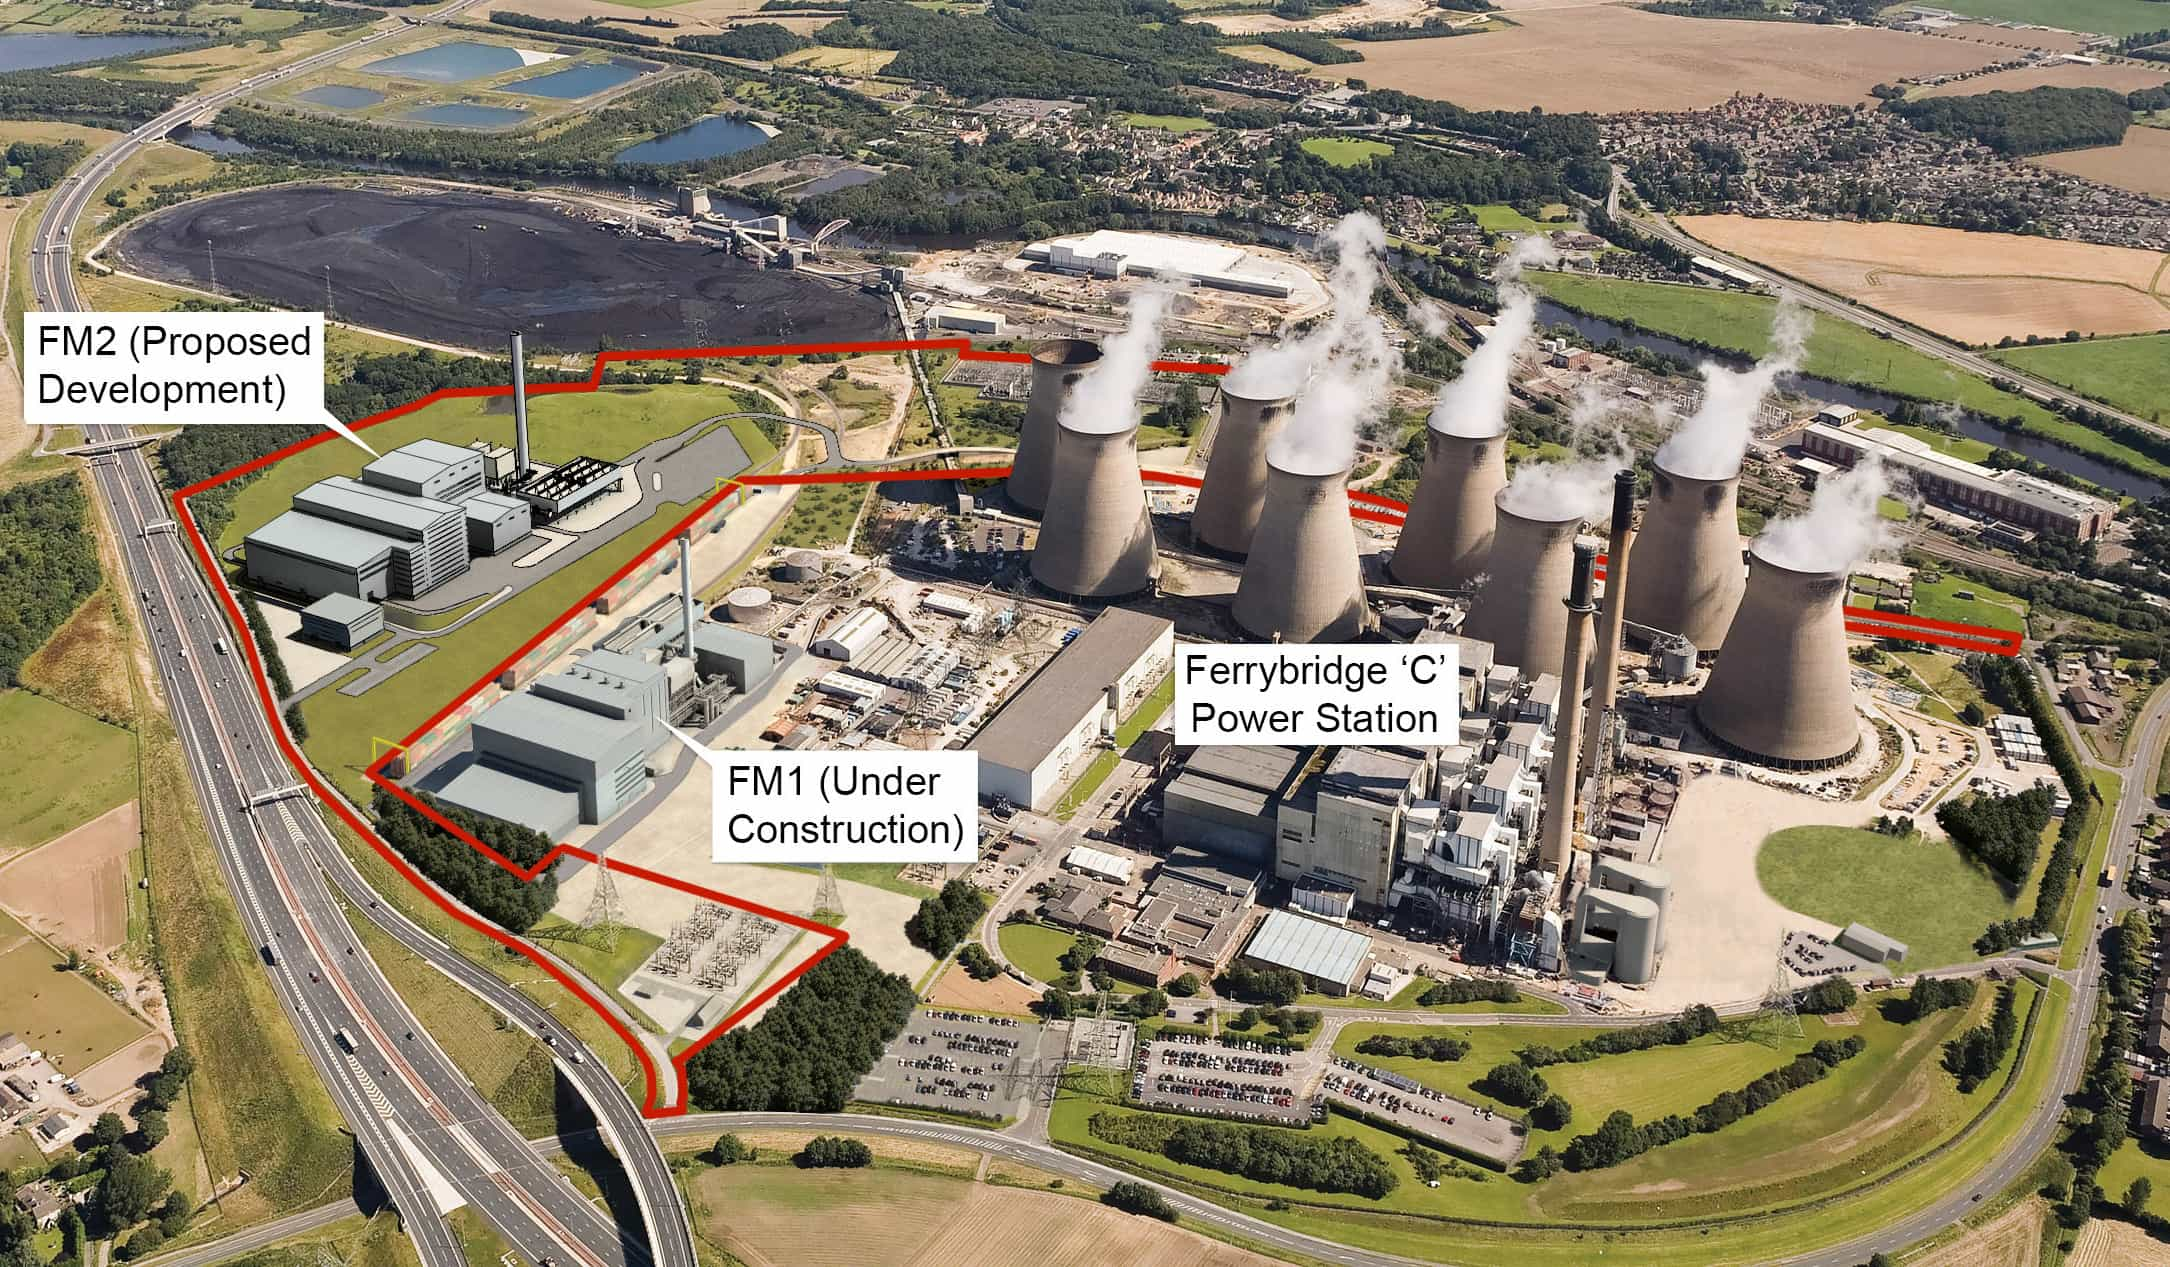 FM1, FM2 in the context of the exisiting C plant at Ferrybridge